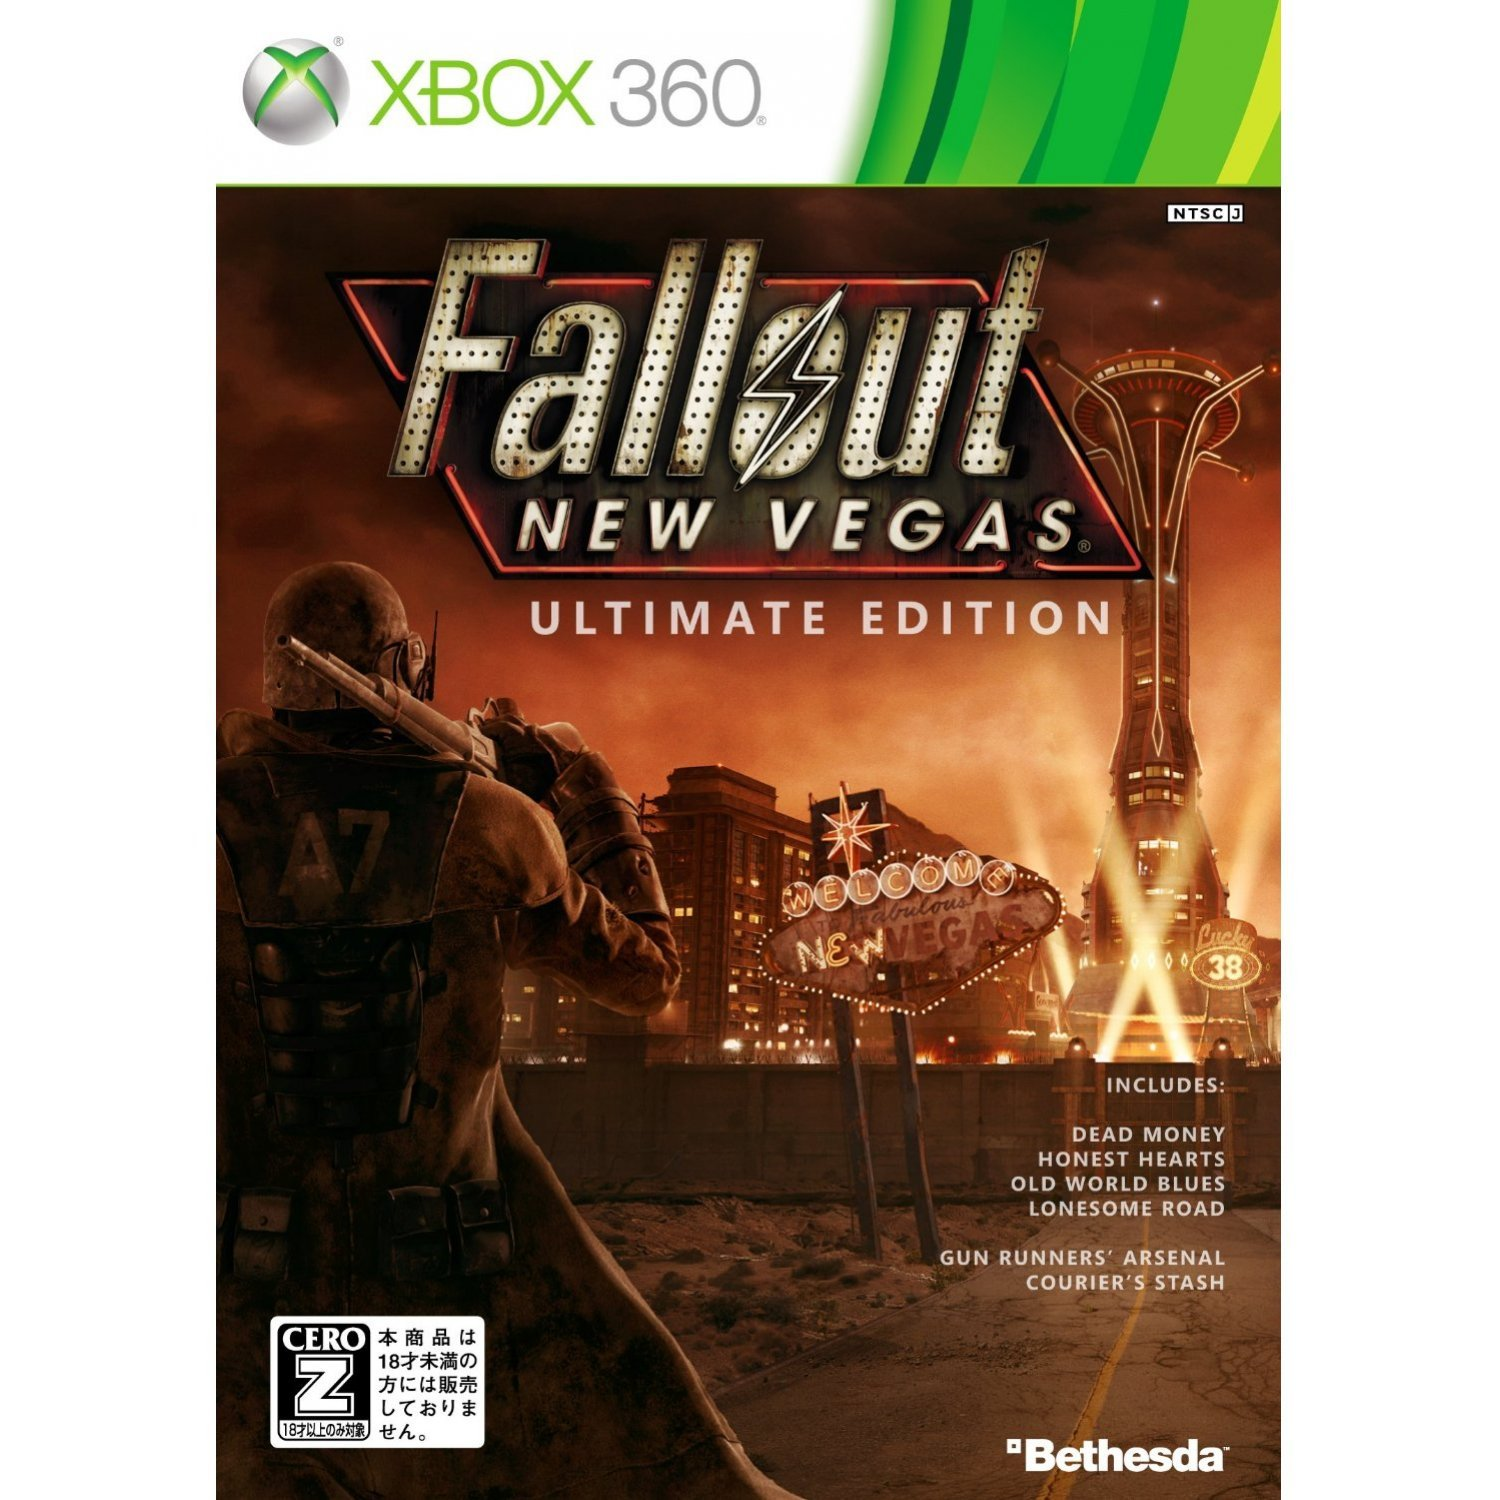 Fallout new vegas ultimate edition unboxing for xbox 360 youtube.